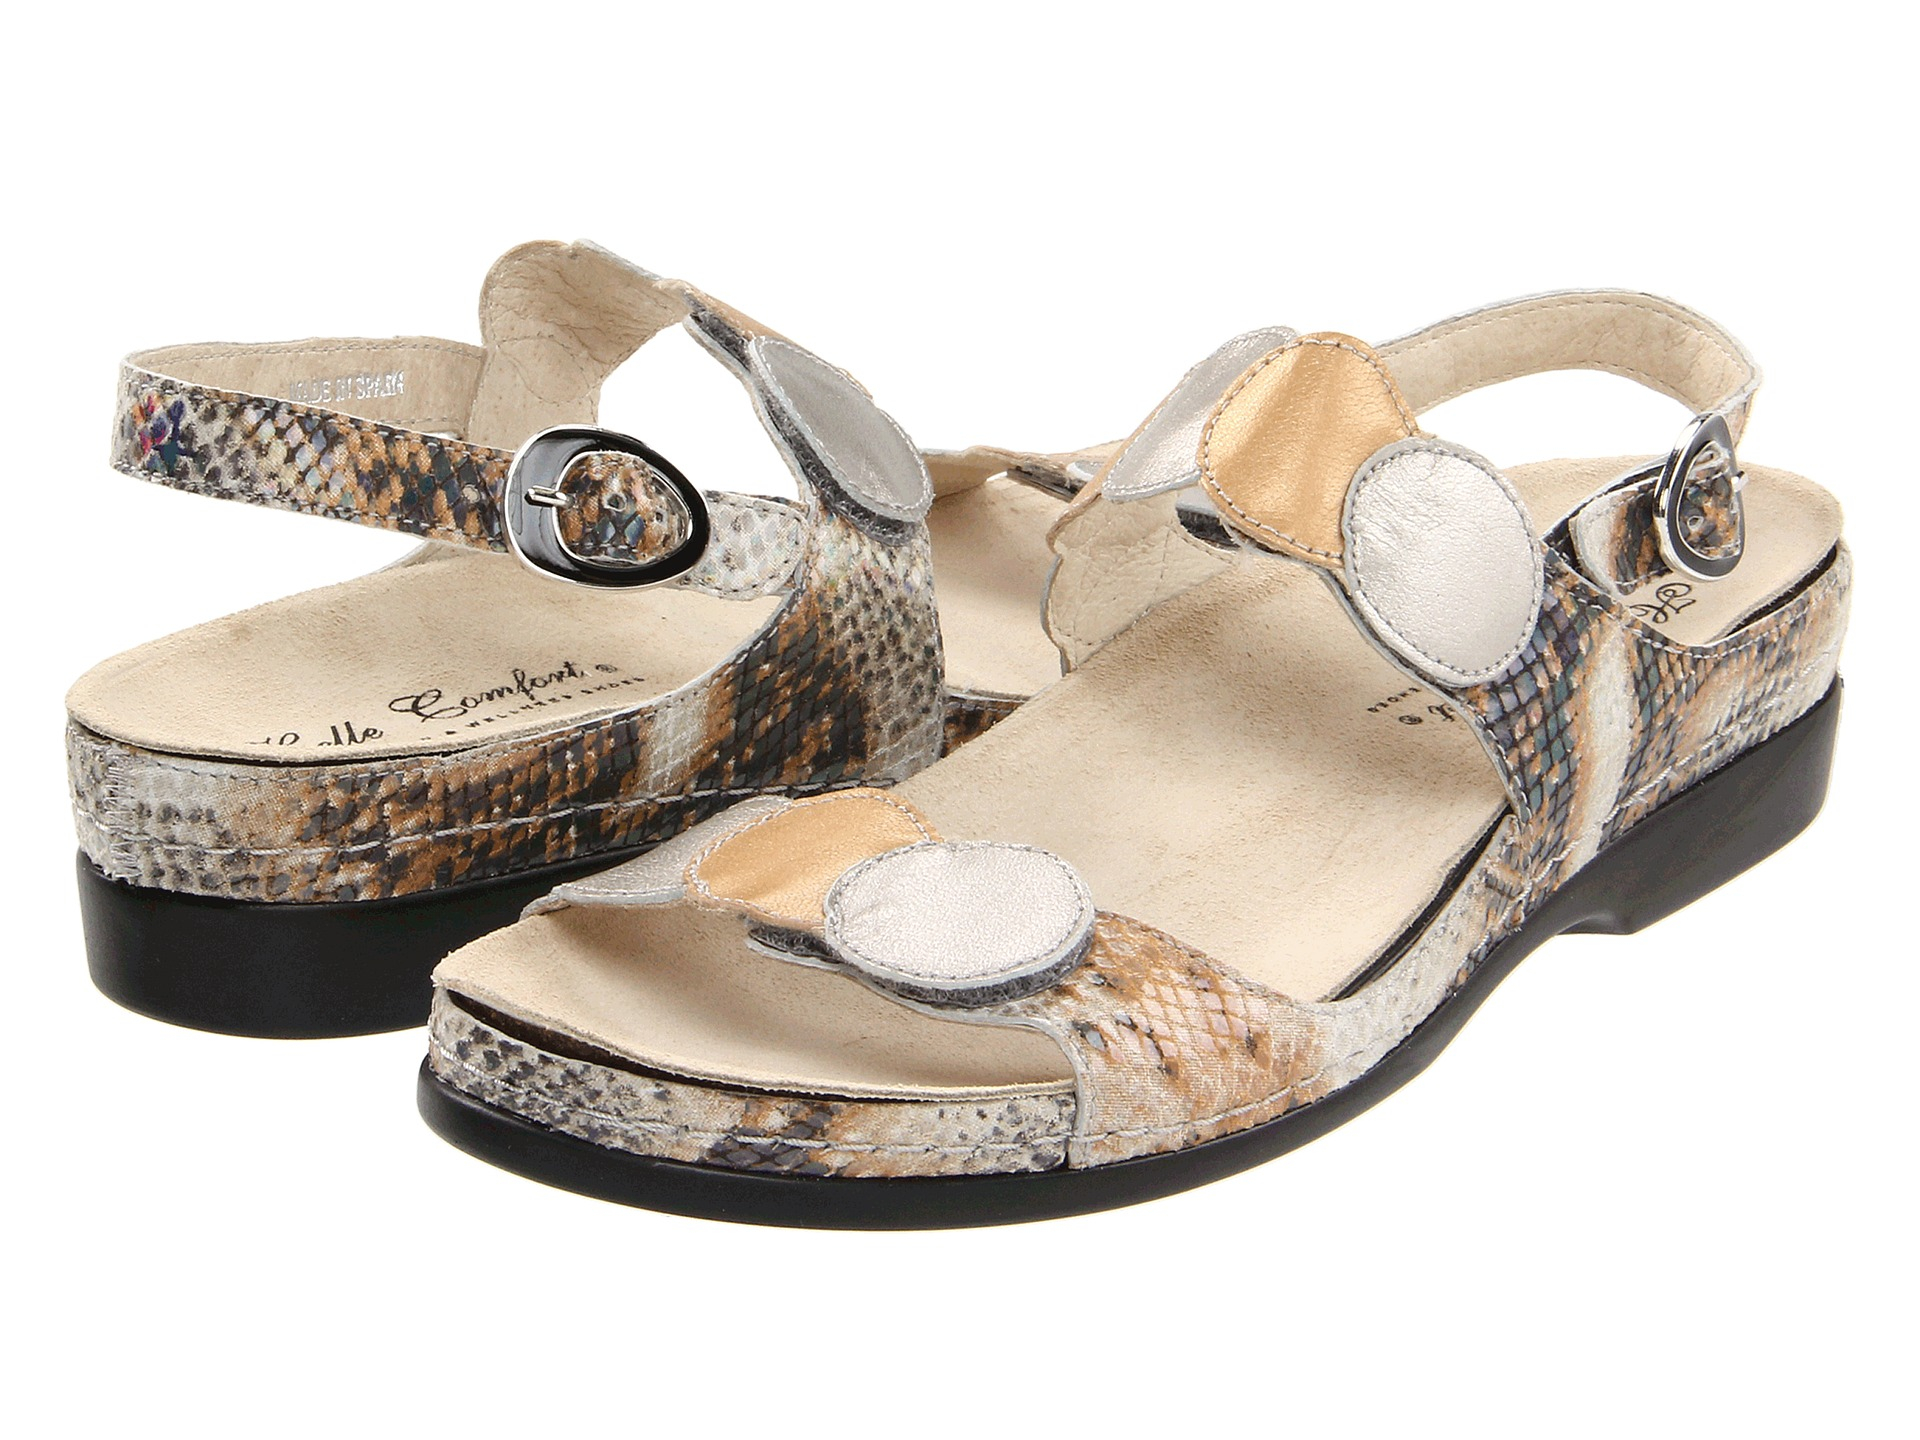 helle shoes in lyst gold normal product bronze metallic comforter comfort multi tula gallery